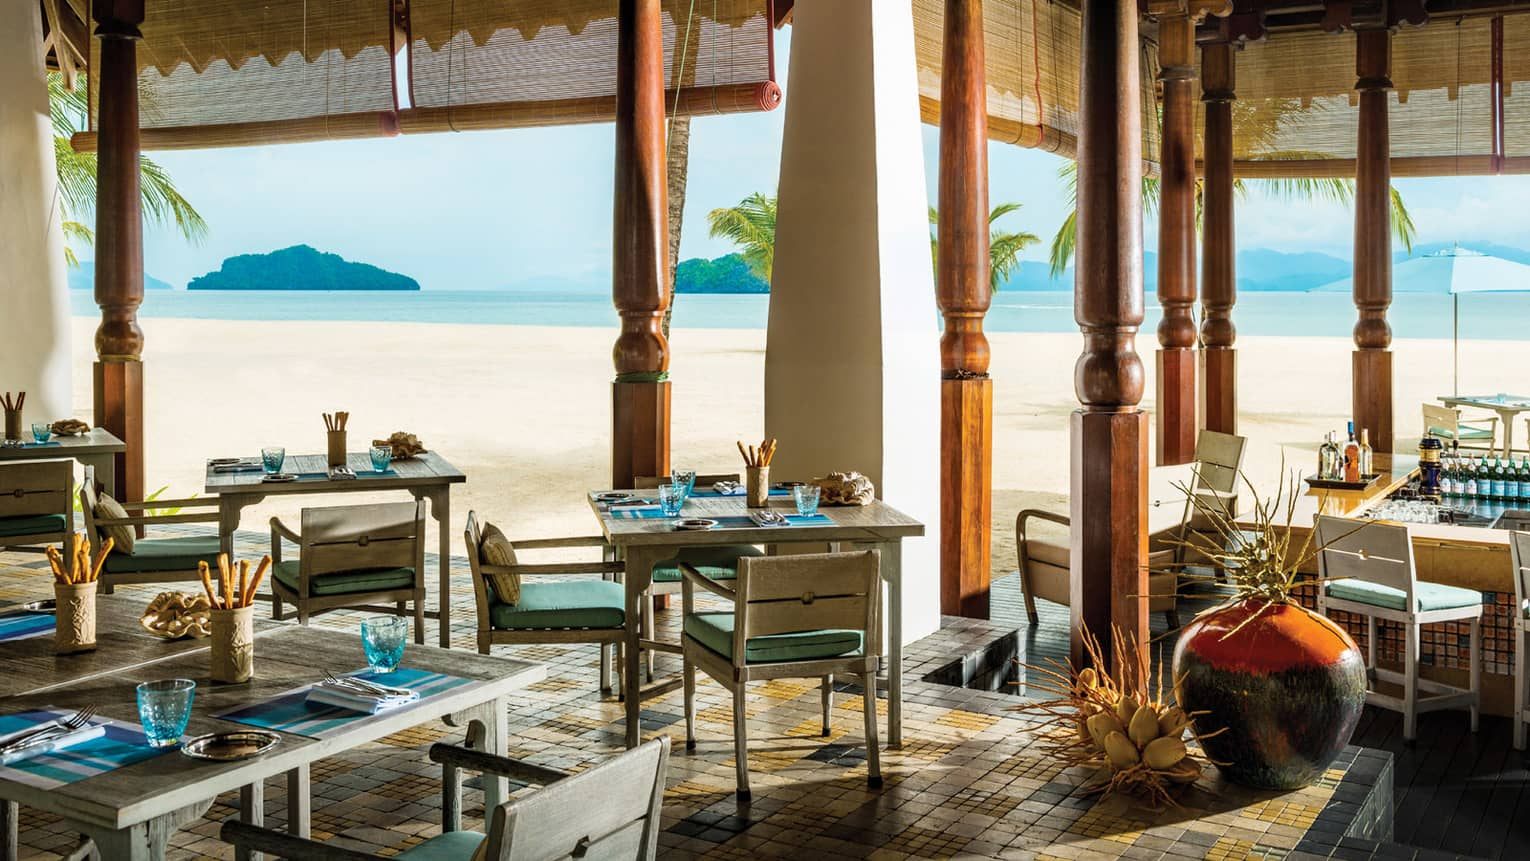 Dining tables, chairs under tall carved wood pillars with open-air walls to beach